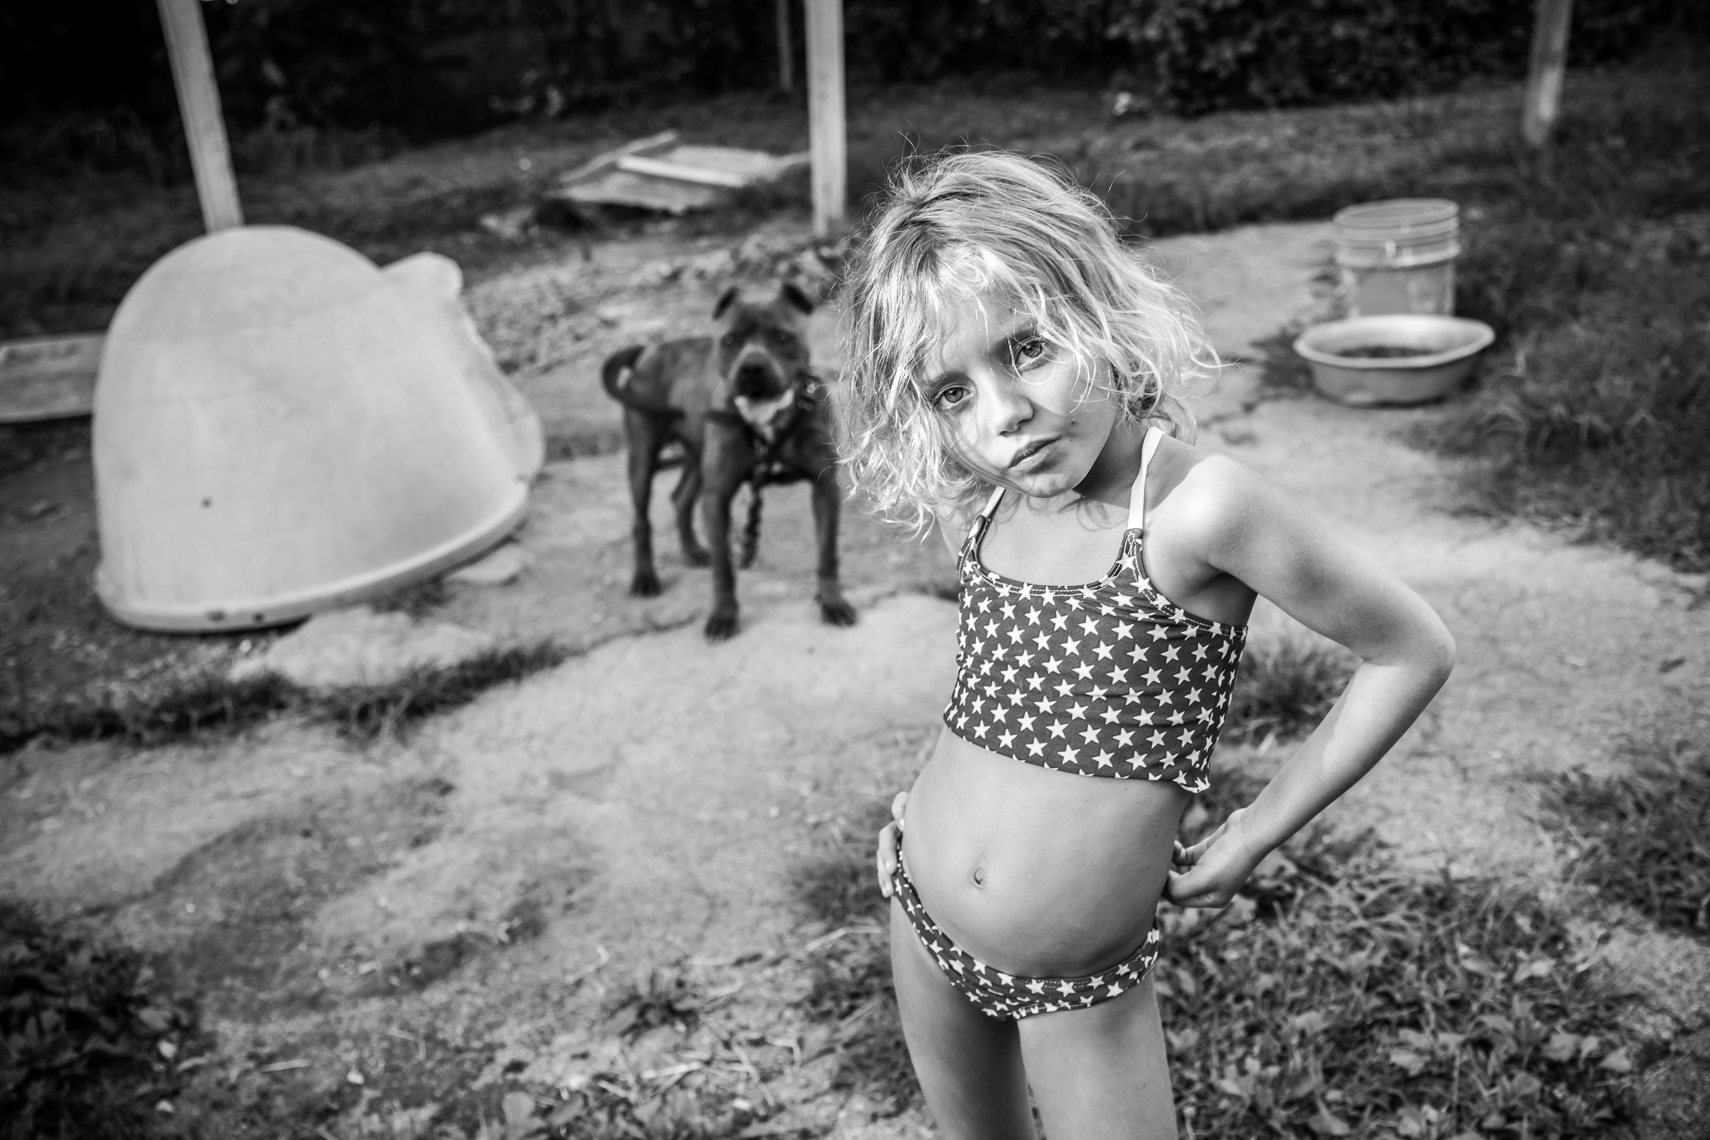 Young girl in with her hand on her hip, swim suit, stars, american, back yard with a big dog on a chain, rural southern life, real life, Nashville, Tennessee. Documentary, Nashville Editorial Photographer, Photojournalist, New Orleans, Nashville, TN, Atla